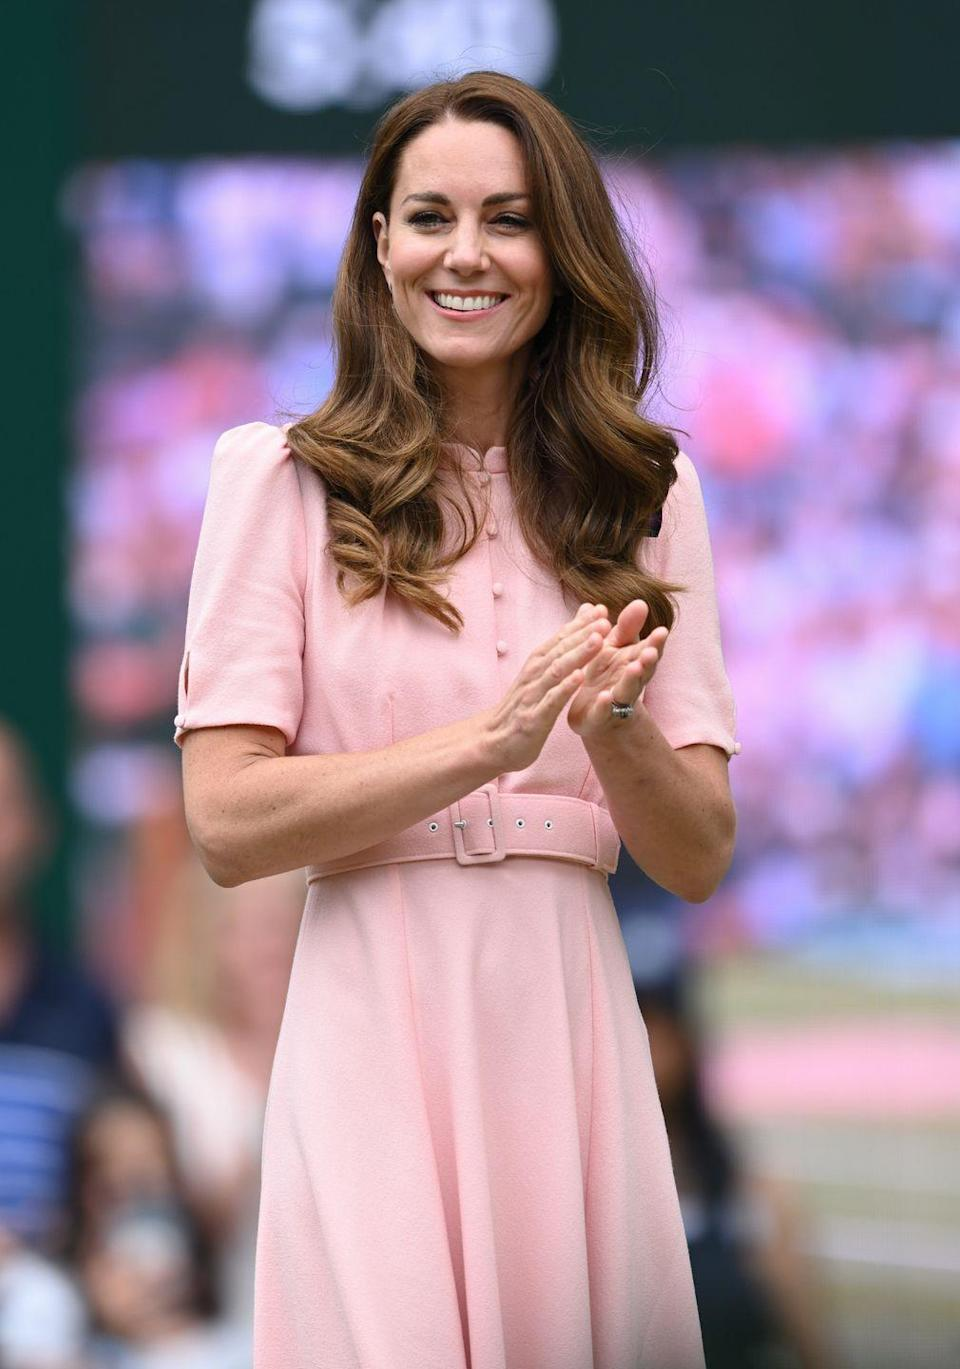 """<p>For the grand return of the Wimbledon Grand Slam, Kate wore this pretty belted pink dress.</p><p><strong>More:</strong> <a href=""""https://www.townandcountrymag.com/society/tradition/g10241217/royal-family-wimbledon/"""" rel=""""nofollow noopener"""" target=""""_blank"""" data-ylk=""""slk:Photos of The Royal Family Holding Court at Wimbledon"""" class=""""link rapid-noclick-resp"""">Photos of The Royal Family Holding Court at Wimbledon</a></p>"""